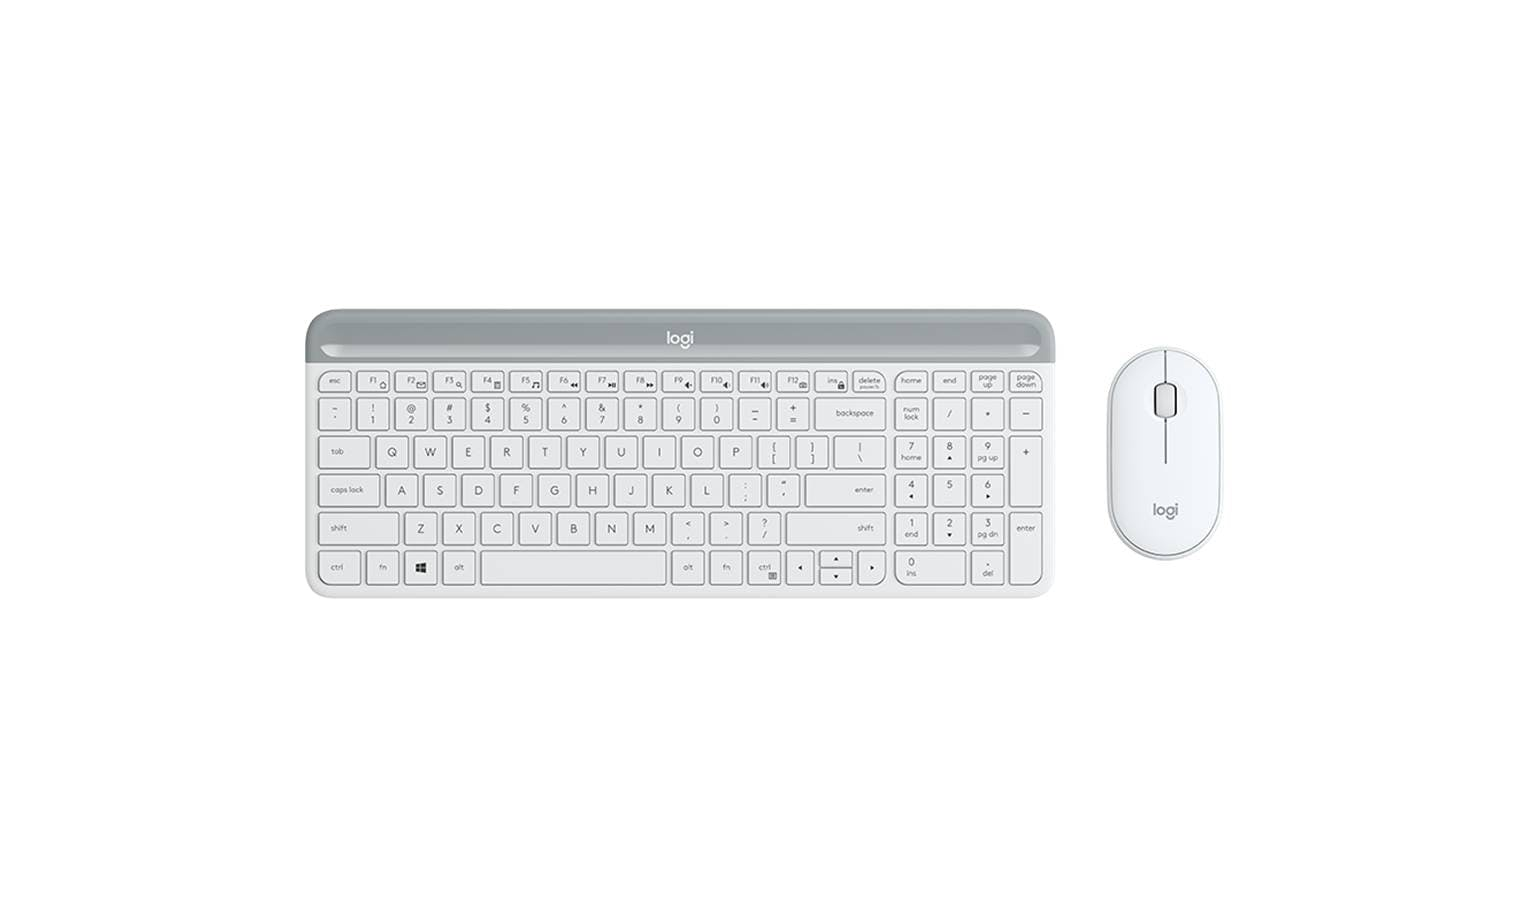 Logitech MK470 Slim Wireless Keyboard and Mouse Combo 920-009183 - Off-White